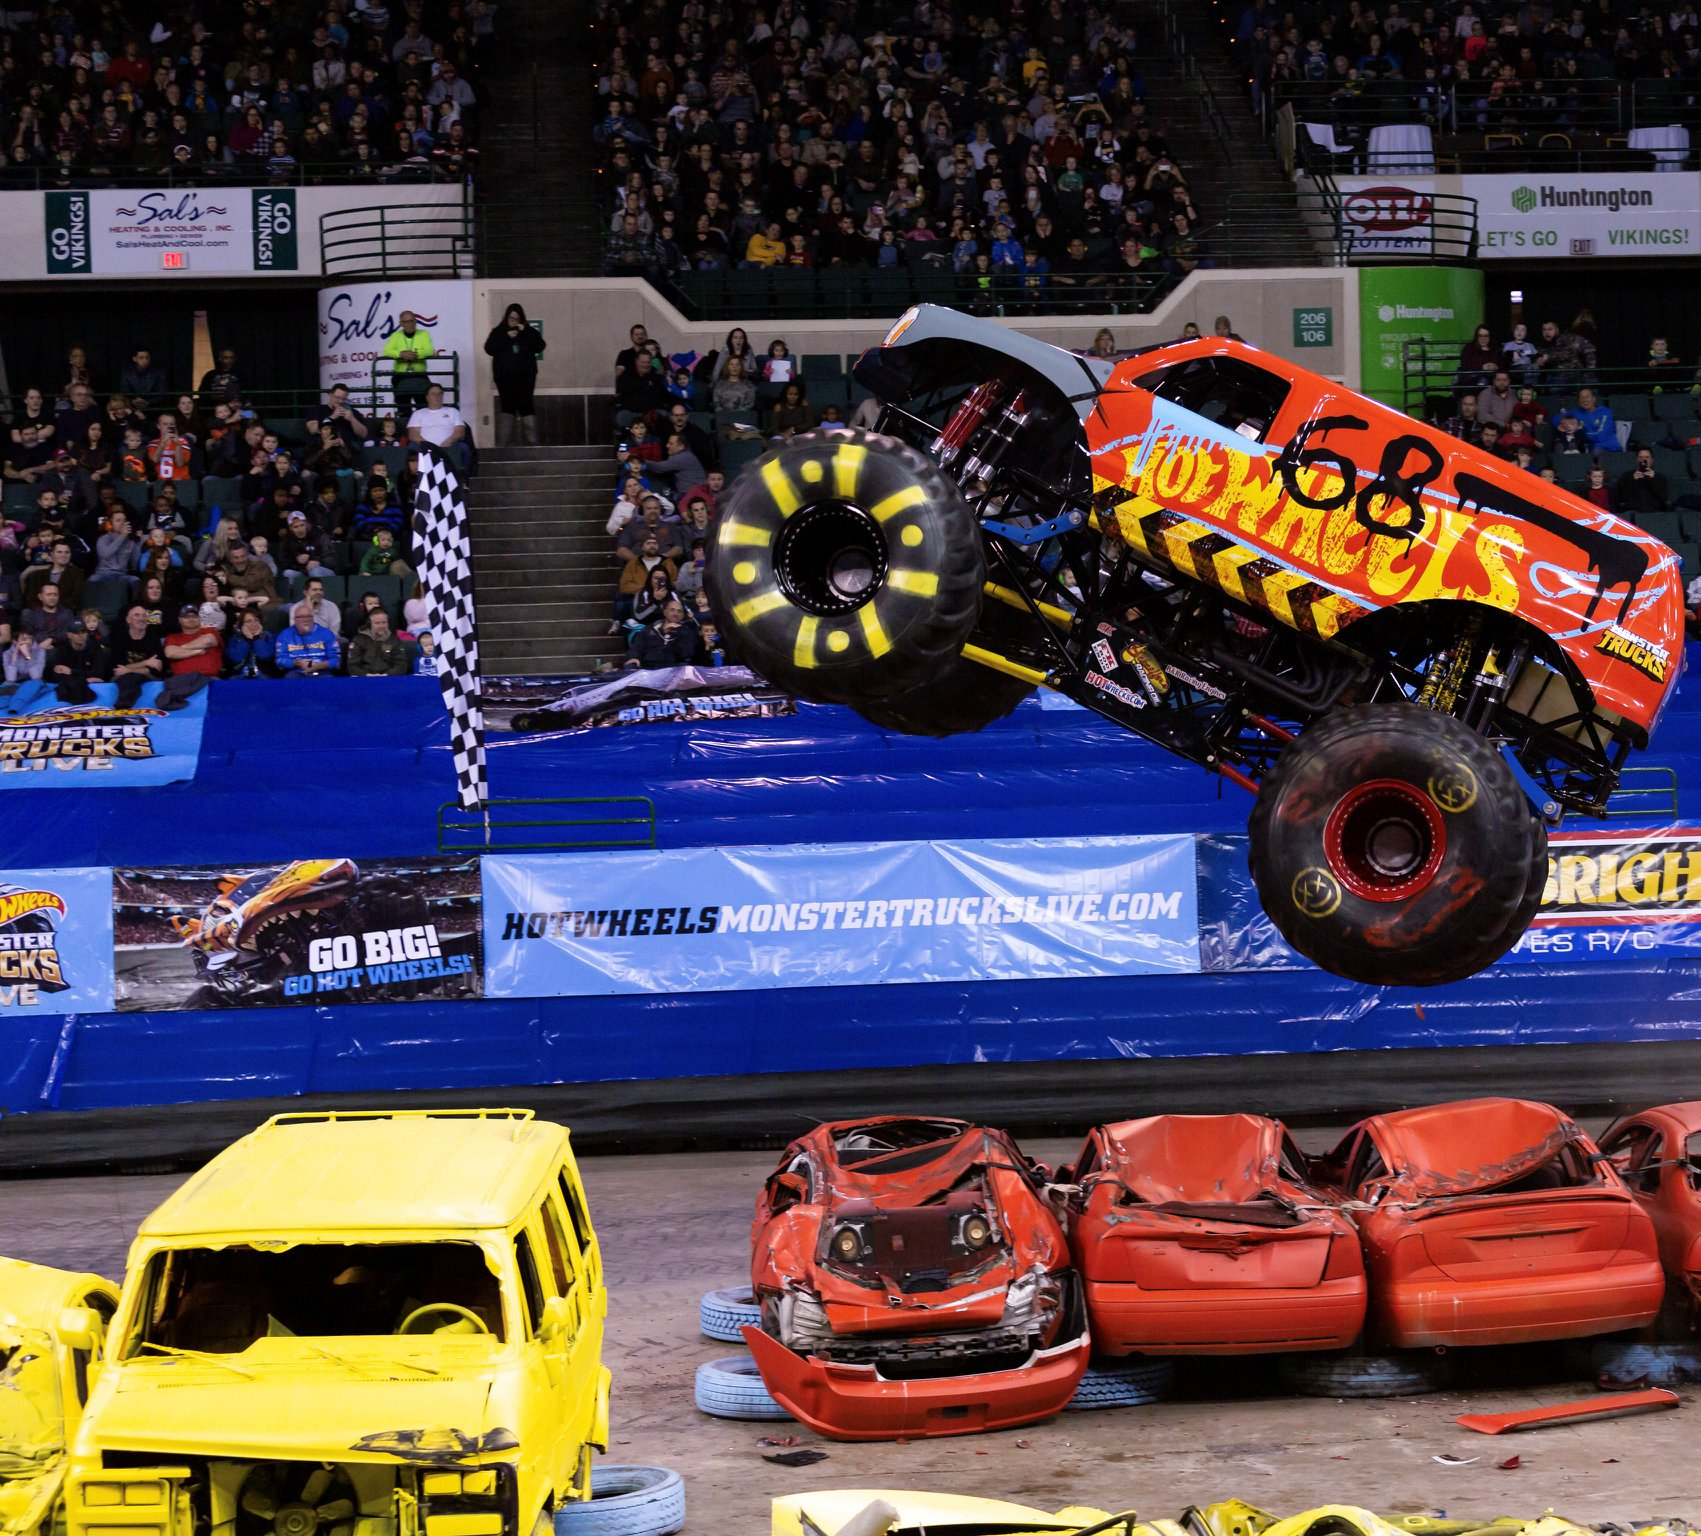 After the Foot teammates took the opening shows, Anson finally got the Demo Derby to stand tall on Sunday.